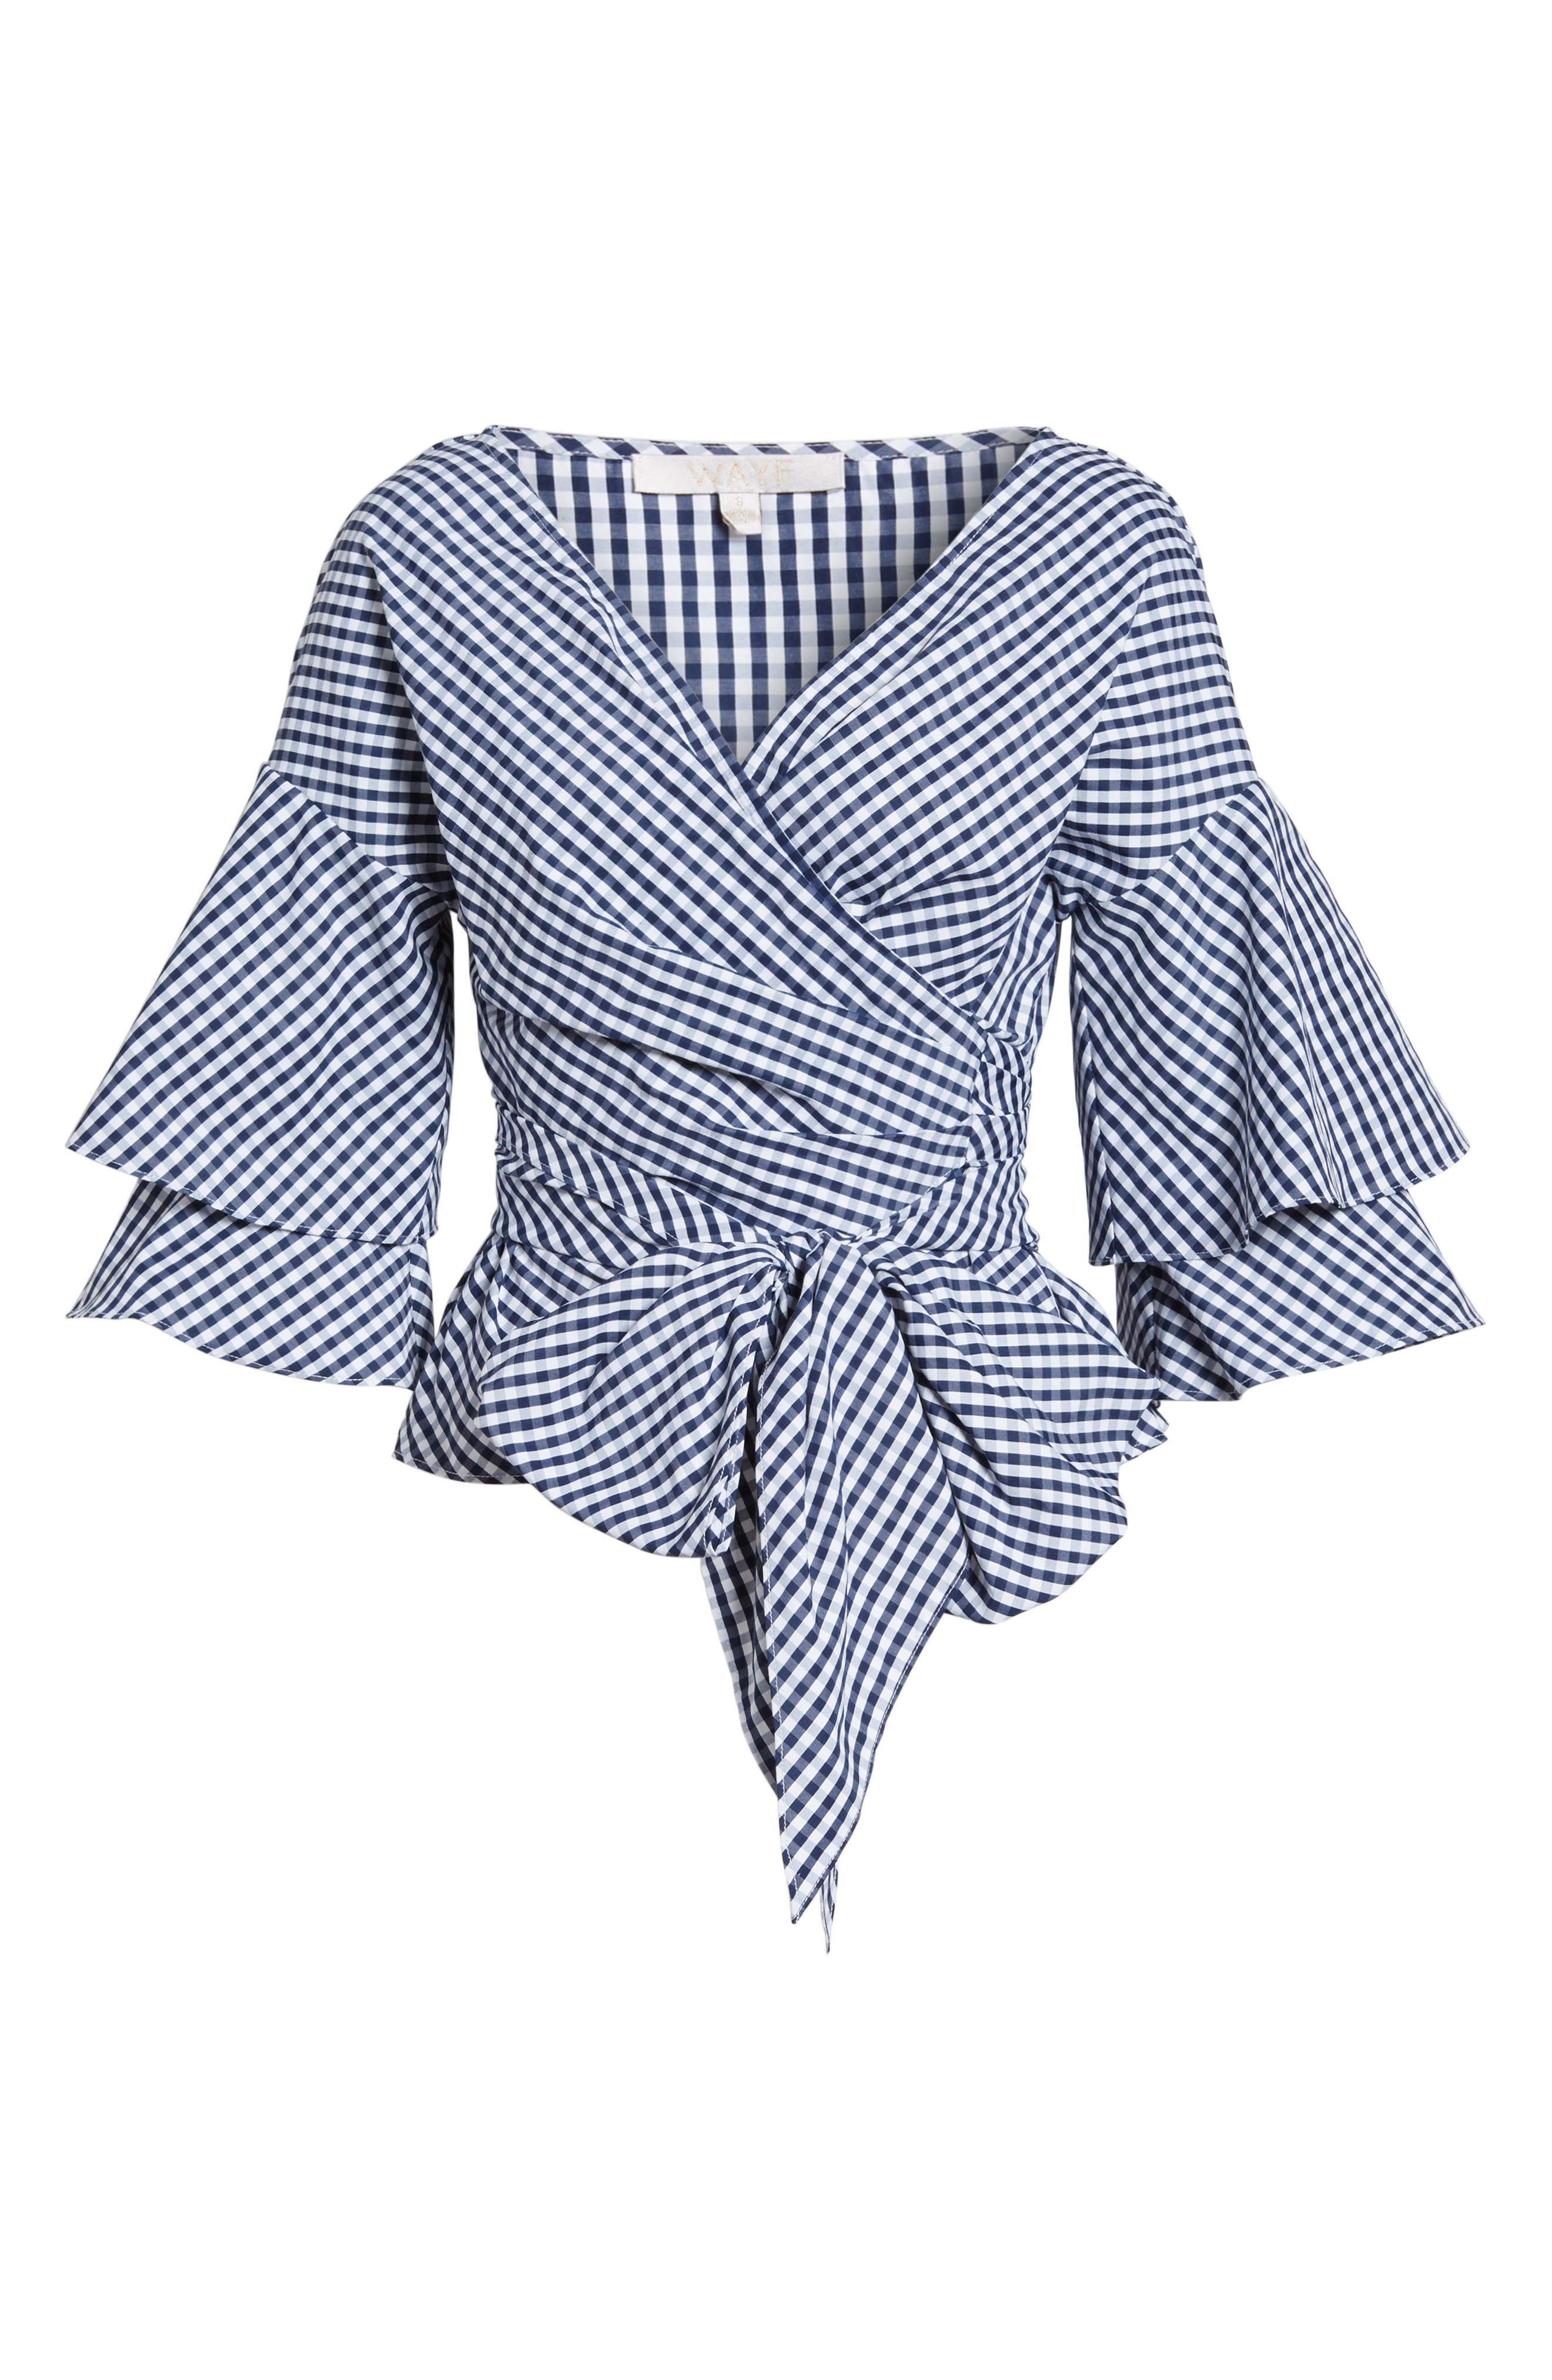 Beckett Tiered Bell Sleeve Top,                             Alternate thumbnail 7, color,                             Navy/ White